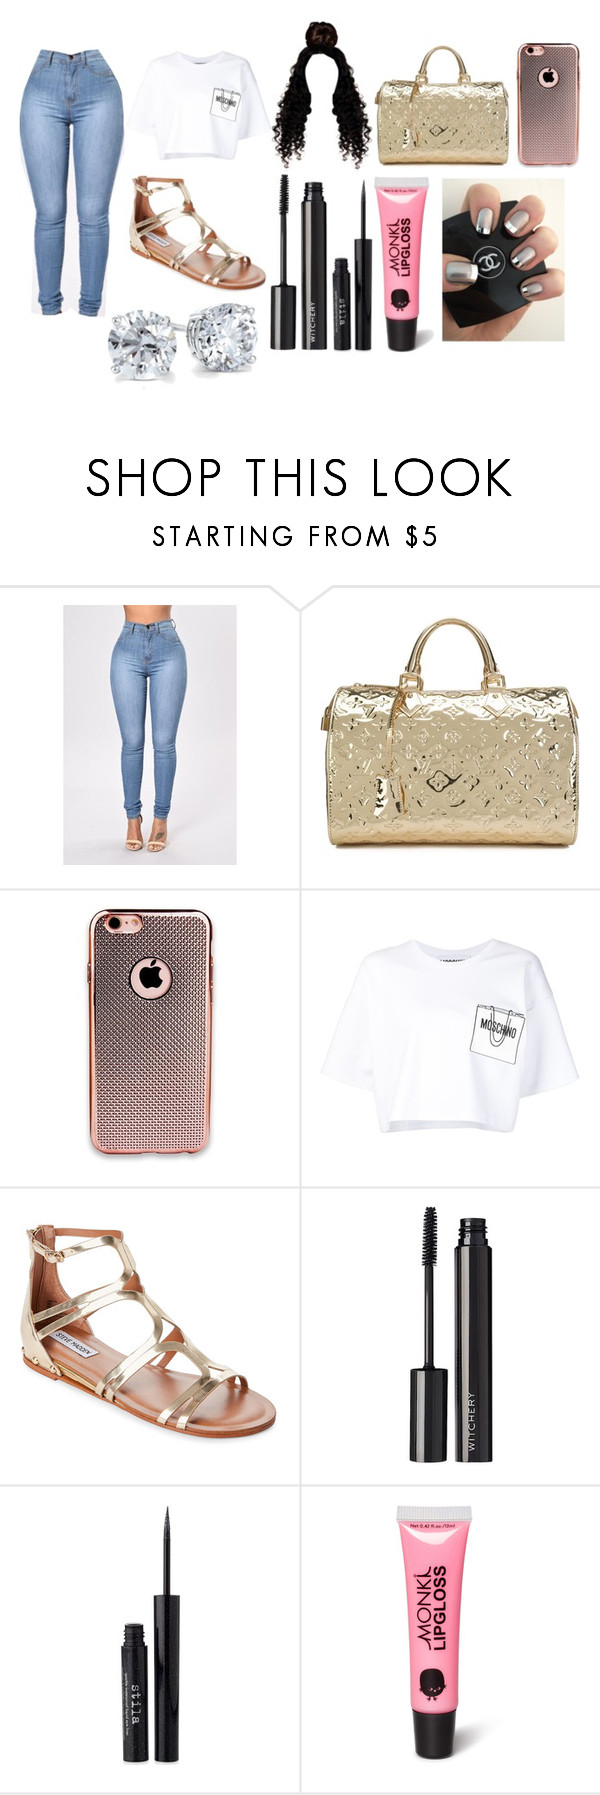 """""""Untitled #3592"""" by mecca-tiana ❤ liked on Polyvore featuring Louis Vuitton, Moschino, Steve Madden, Witchery, Stila, Monki and Blue Nile"""